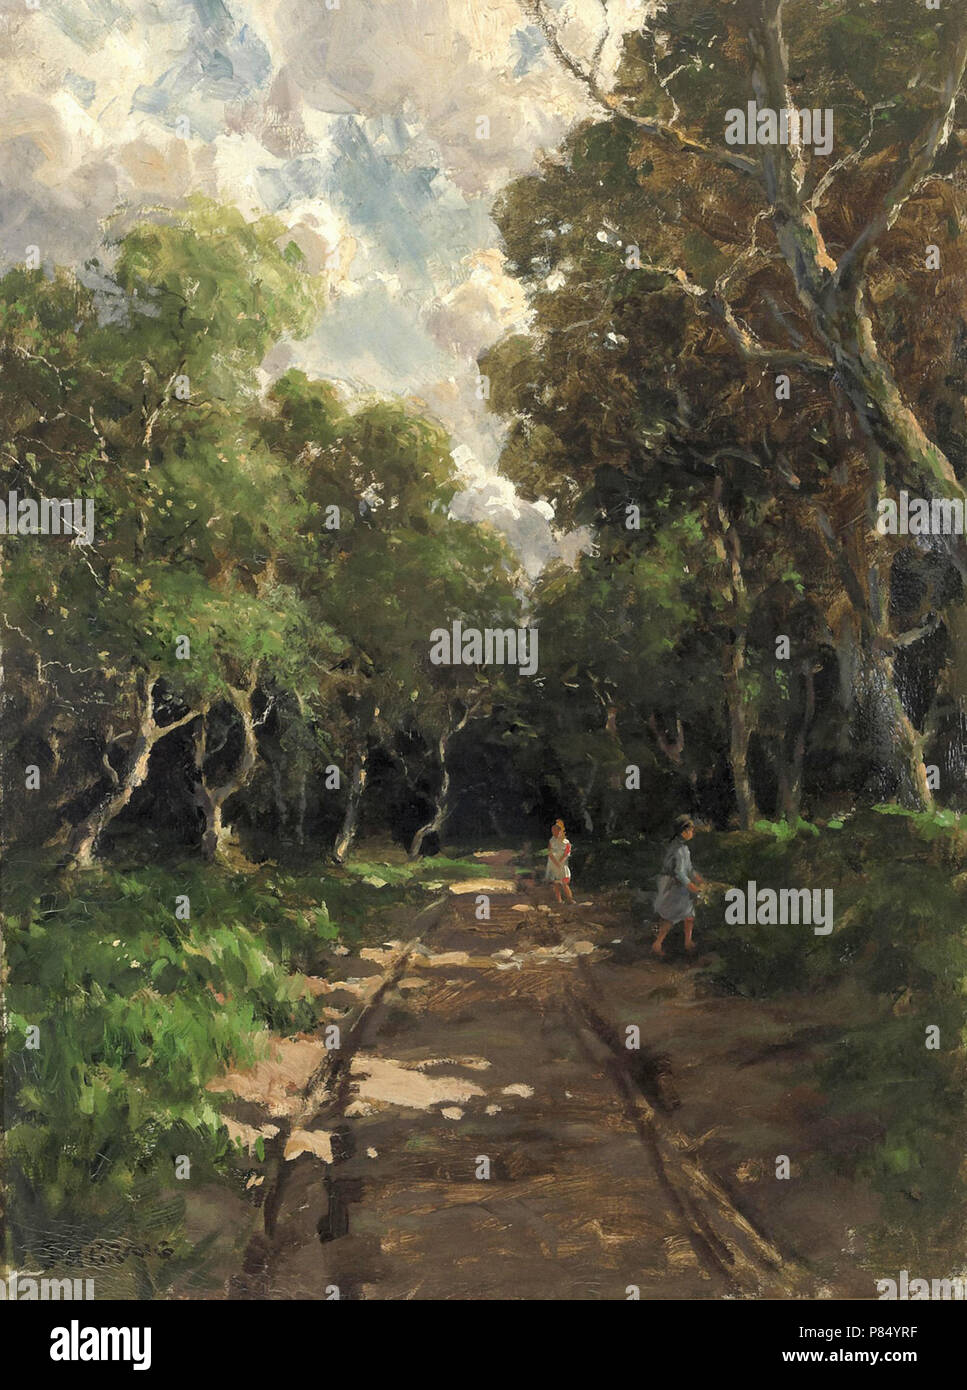 Craig  James Humbert - a Country Lane with Figures - Stock Image